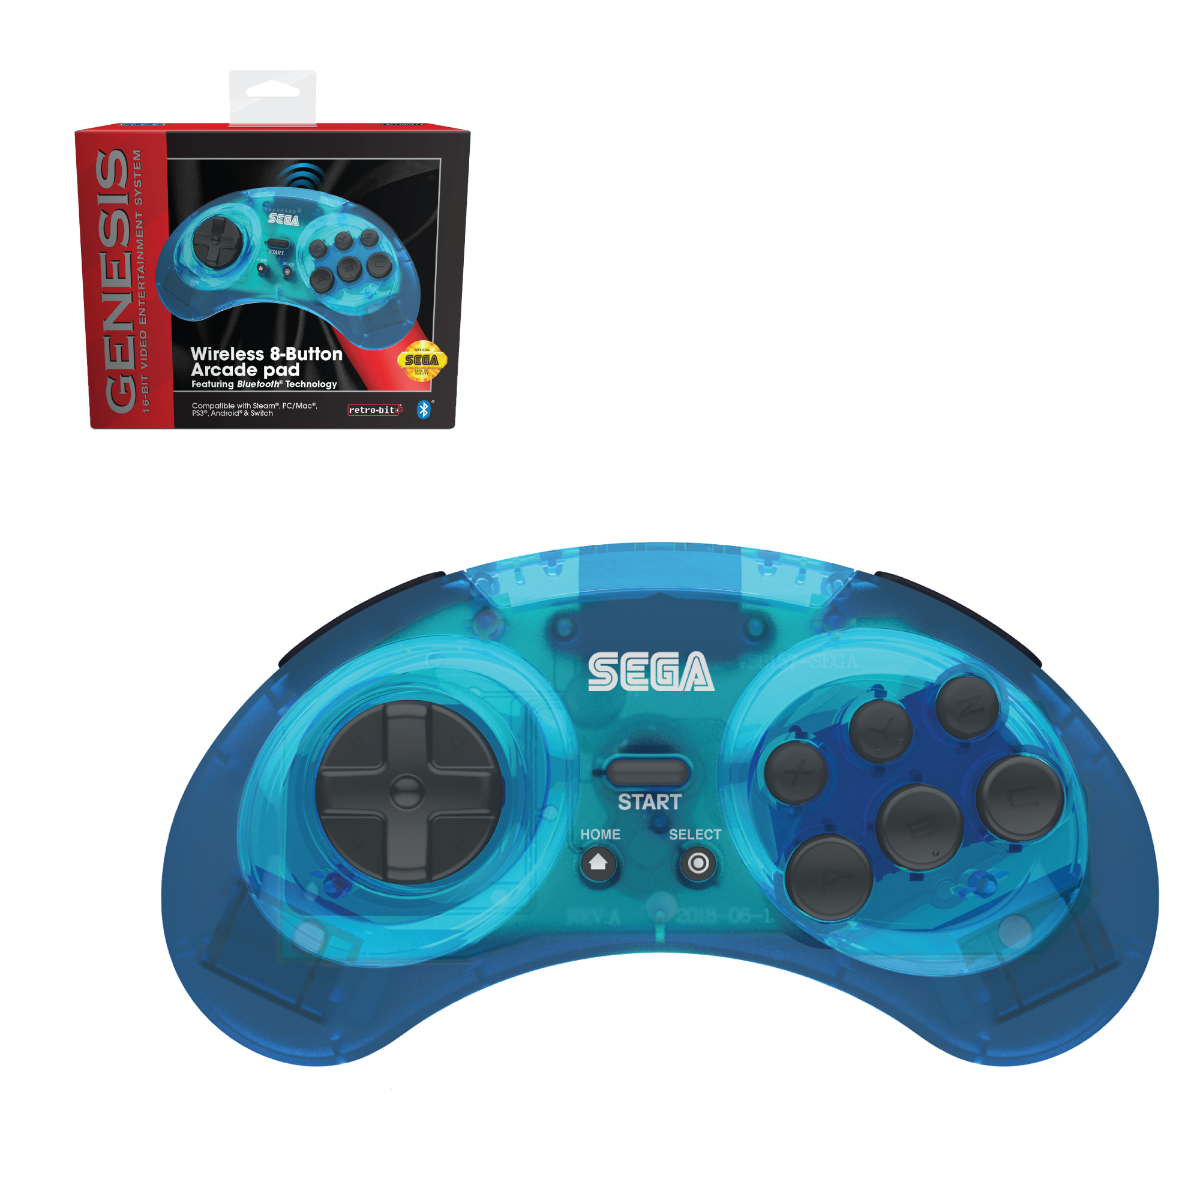 SEGA, Genesis, 8-Button, Arcade Pad, wireless, Bluetooth, Clear Blue